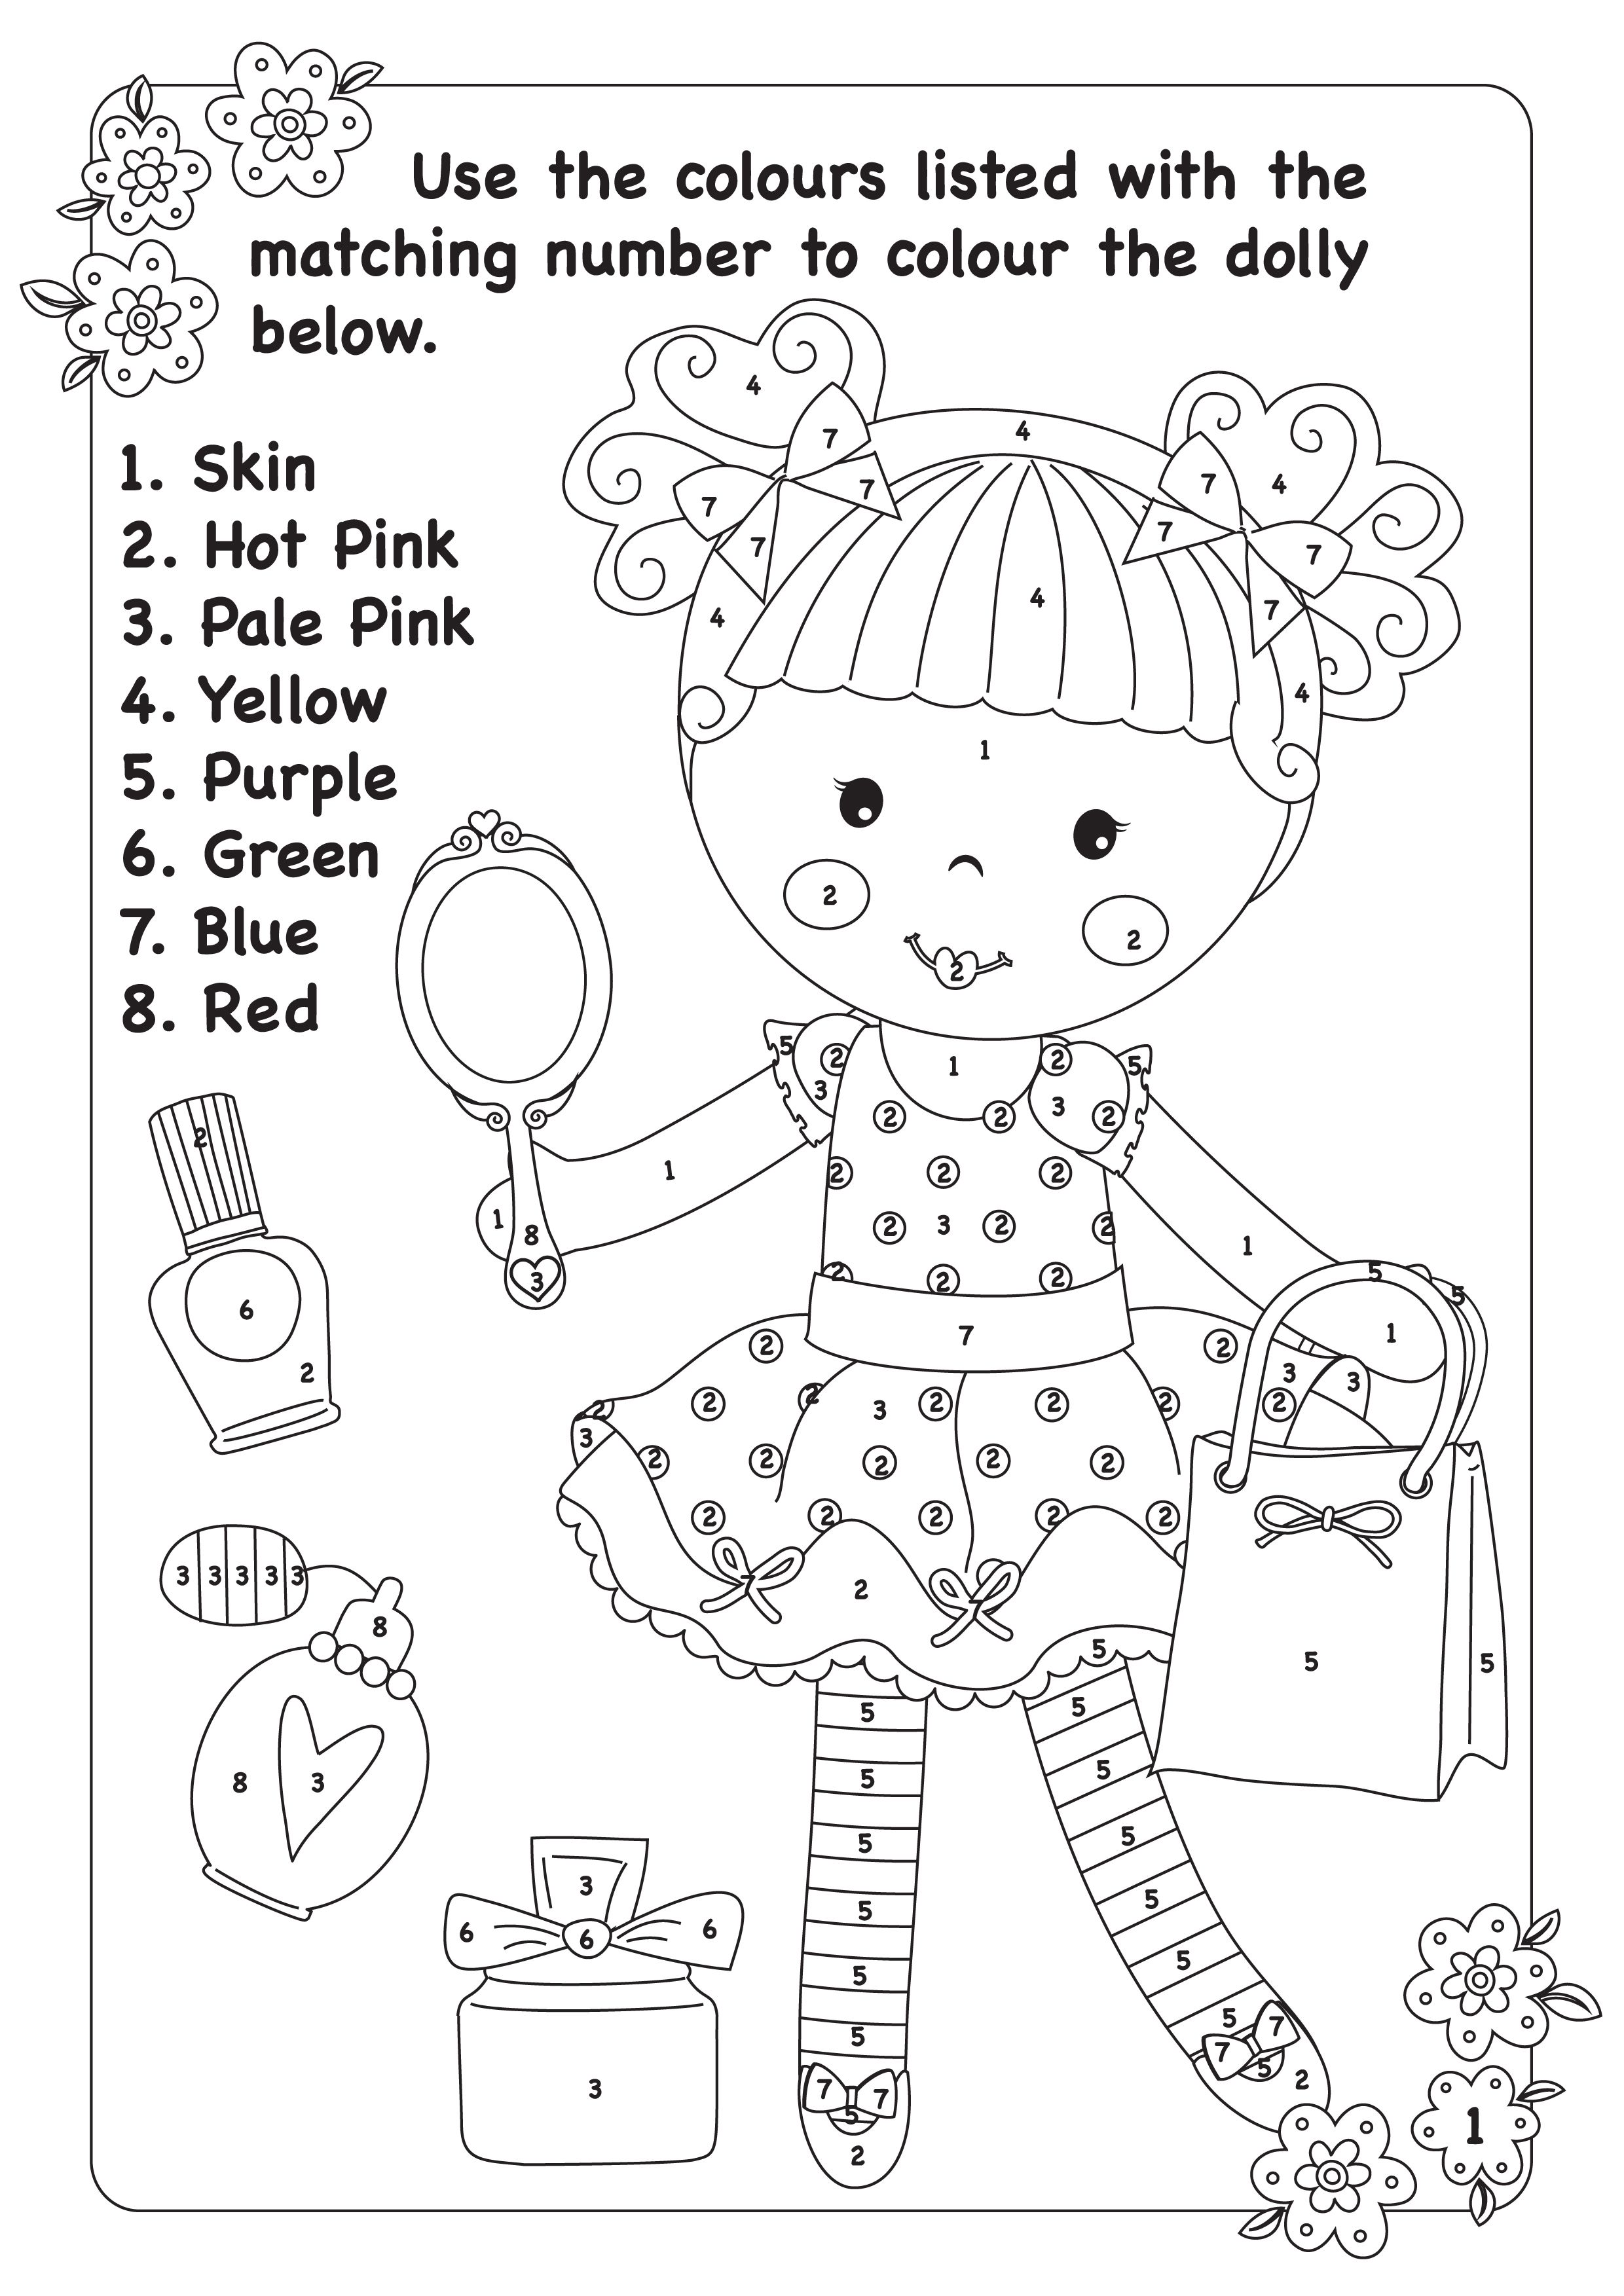 Activity Sheet Colouring Page By Pink Poppy Just Simply Download The Image Print It Out On